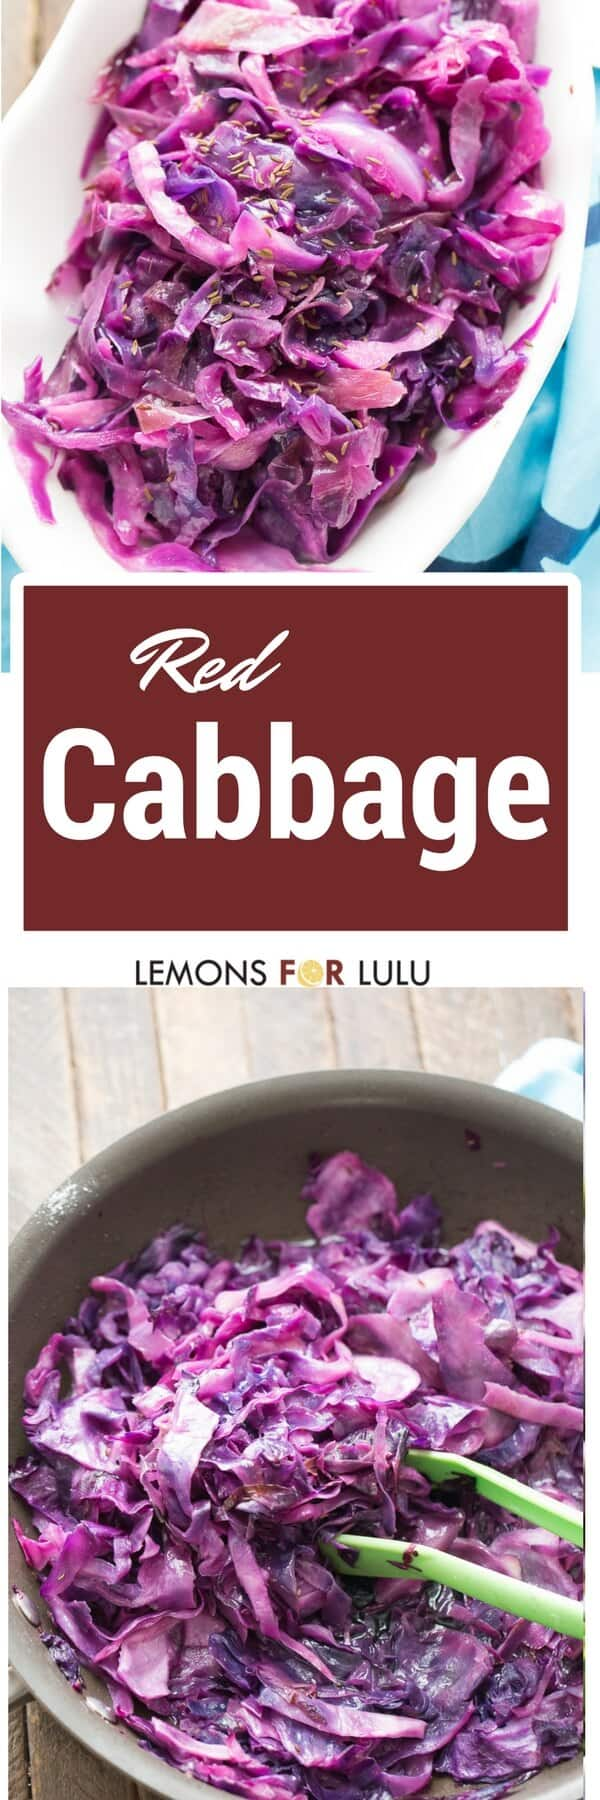 Simple recipes can be so good! This red cabbage recipe is definitely simple plus it tastes great and goes with anything!